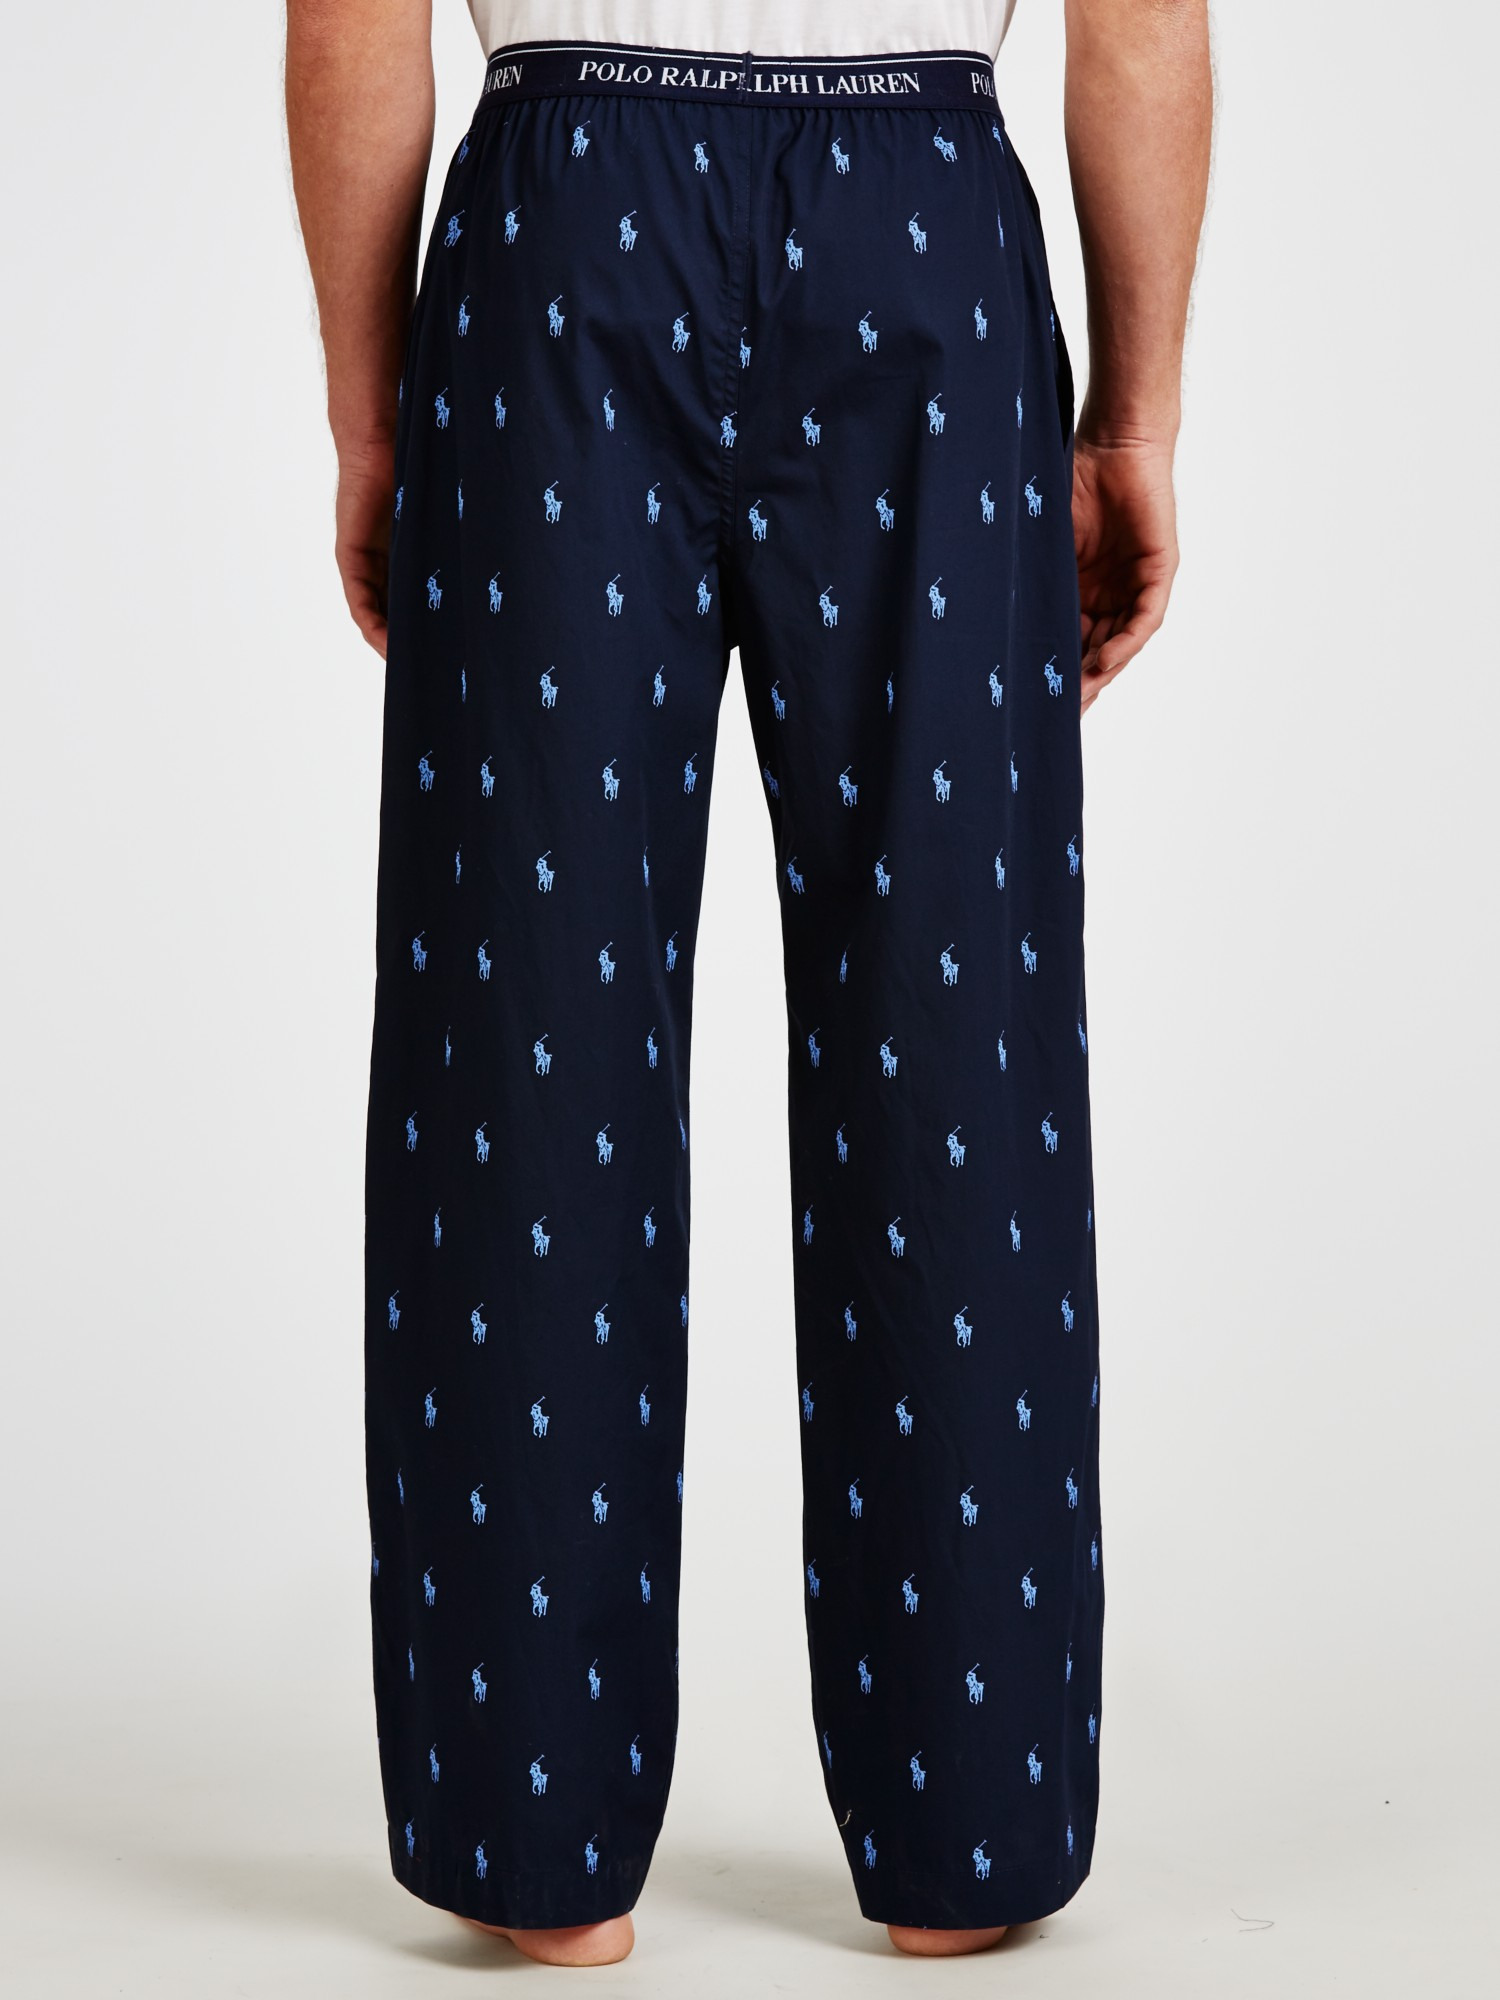 Polo Ralph Lauren Pony Print Lounge Pants In Blue For Men